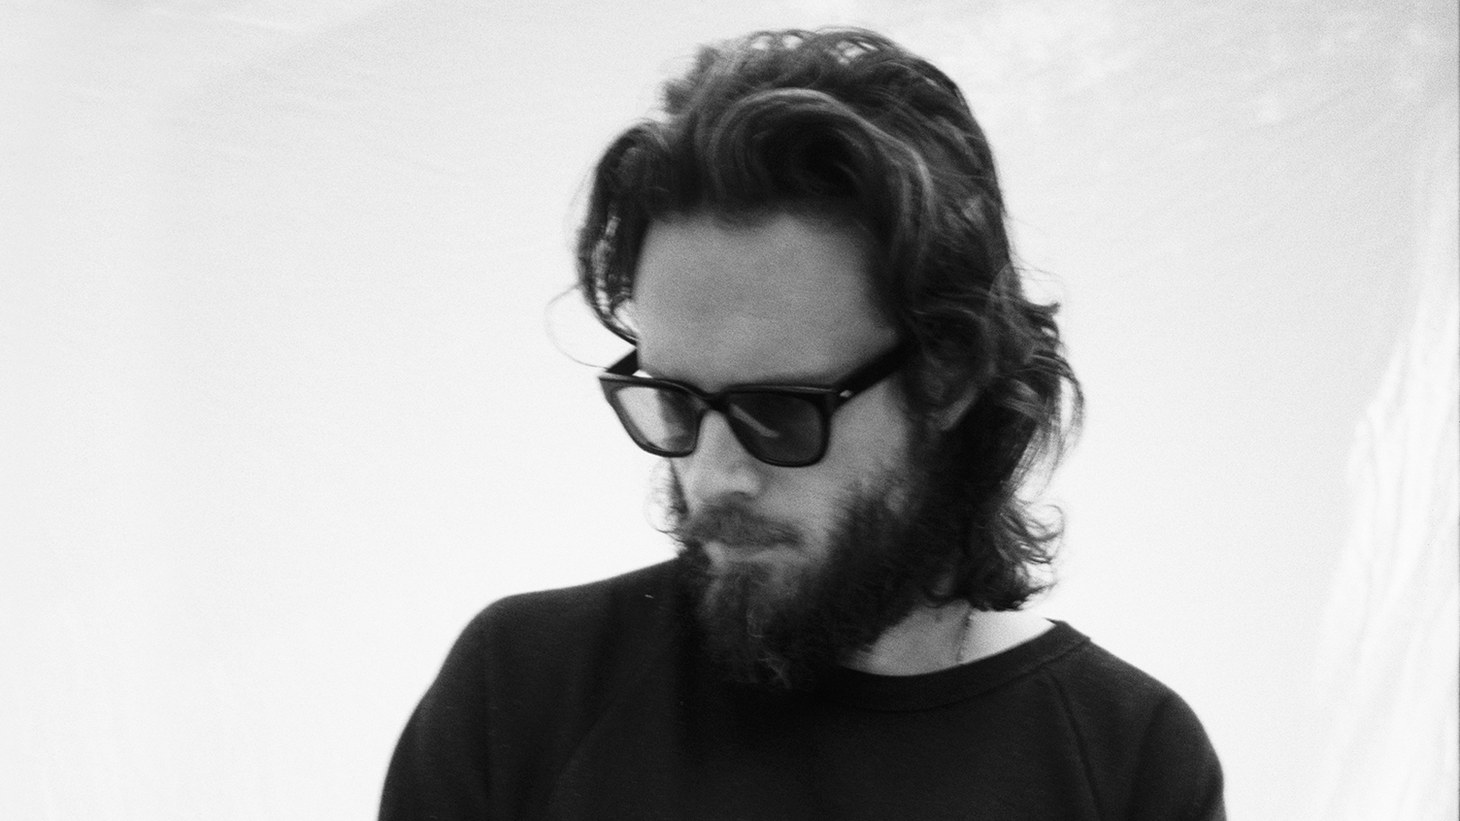 """A couple of new Father John Misty songs are milling about at the moment — they're his contribution to """"Sub Pop Singles Club, Vol. 5."""" We get to share the first new work since 2018's   God's Favorite Customer,"""" here's """"To R."""""""